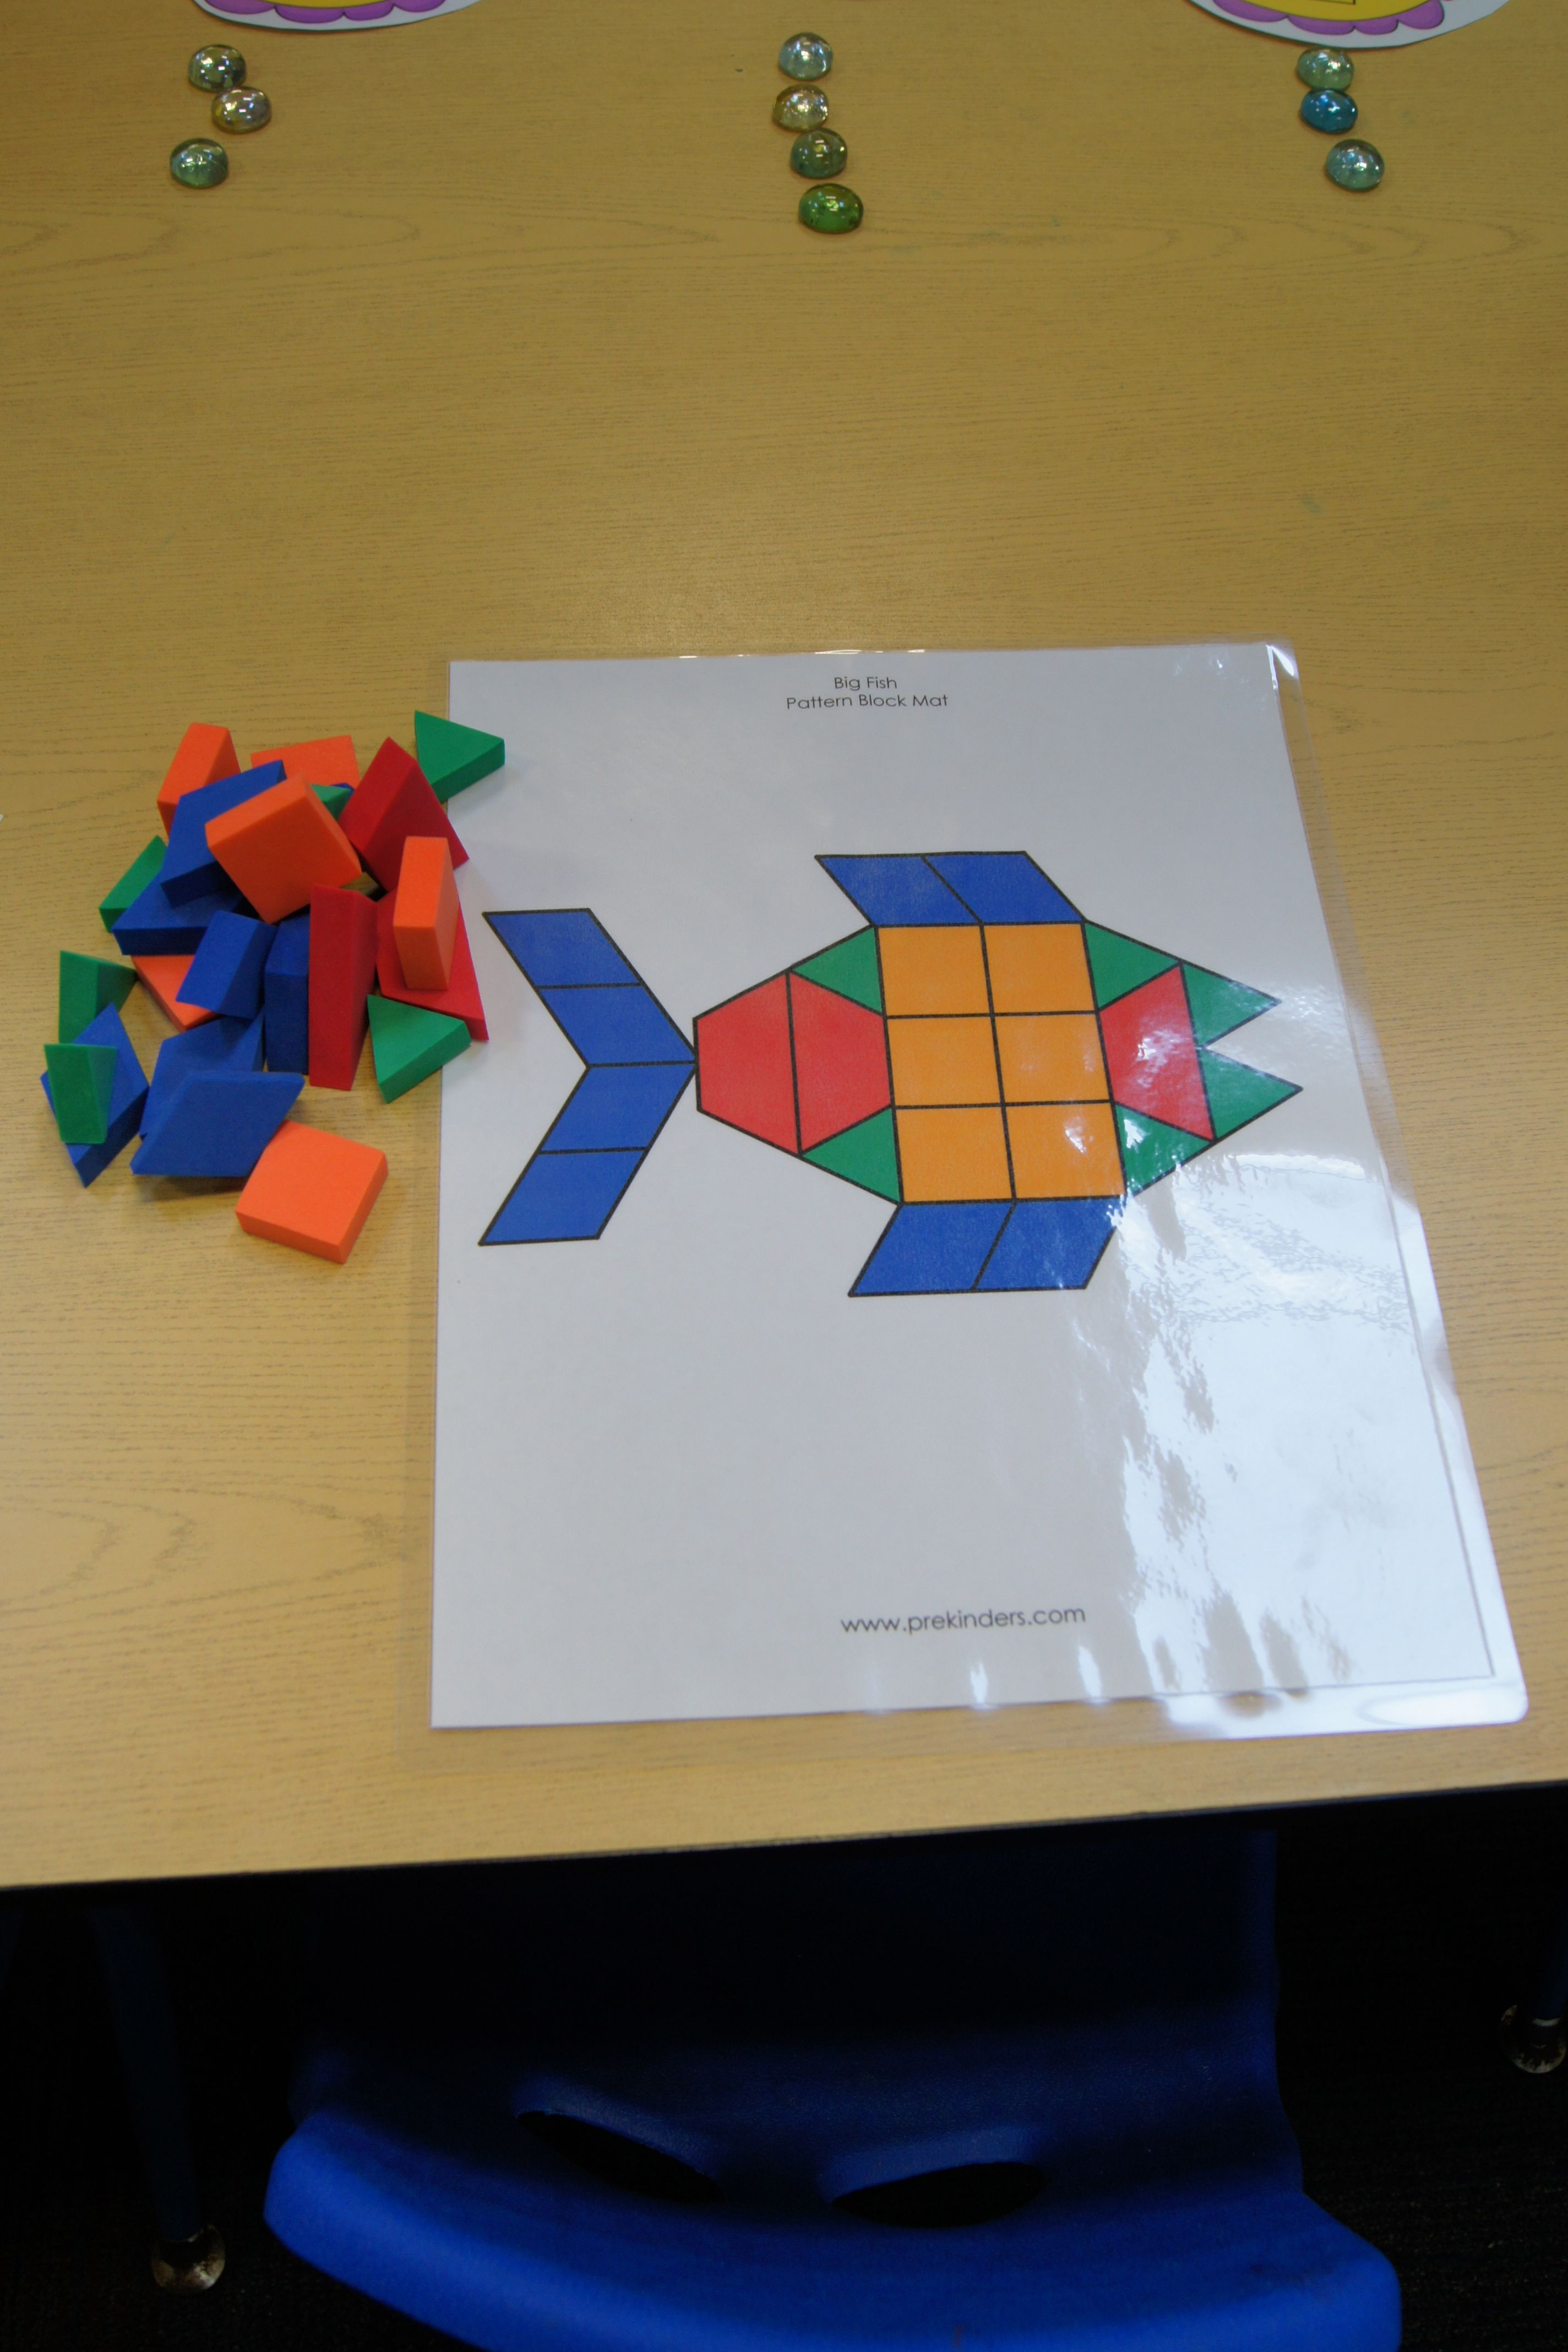 C C B A B F Afc E additionally Sponge Tower Time in addition Cc E Fc C Ccf F C C F additionally Paper Plate Quilt For Preschool as well Mysterybox. on patterns pieces for preschool